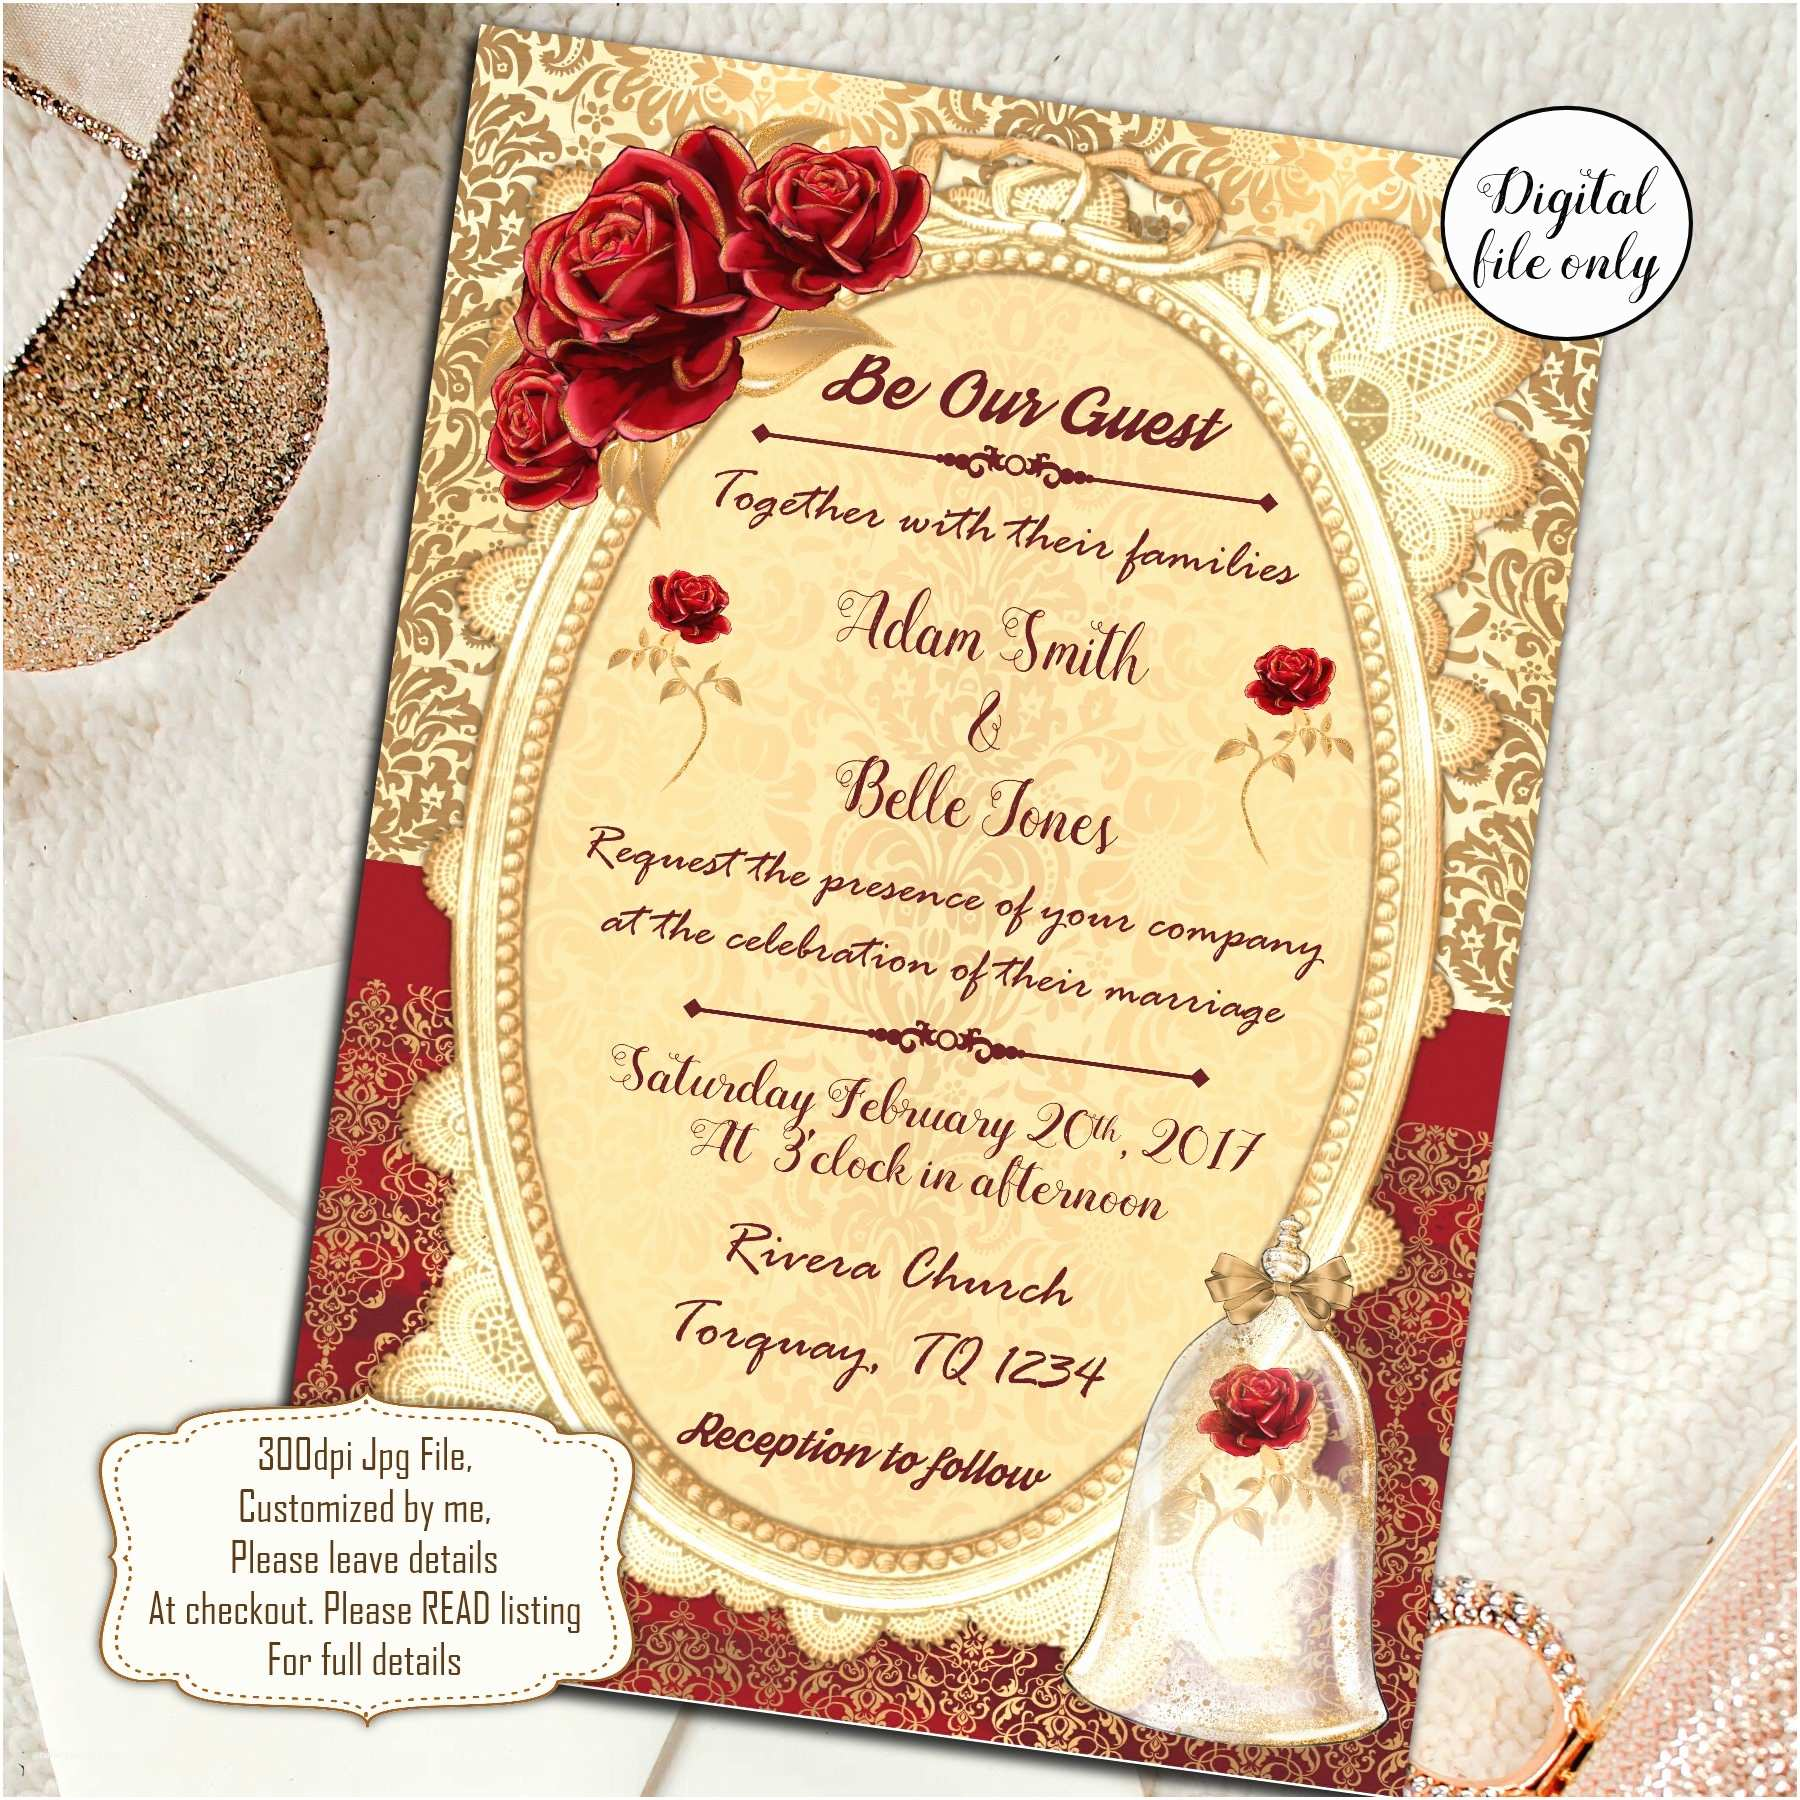 Beauty and the Beast Inspired Wedding Invitations Beauty and the Beast Wedding Invitations Wedding Invite Red